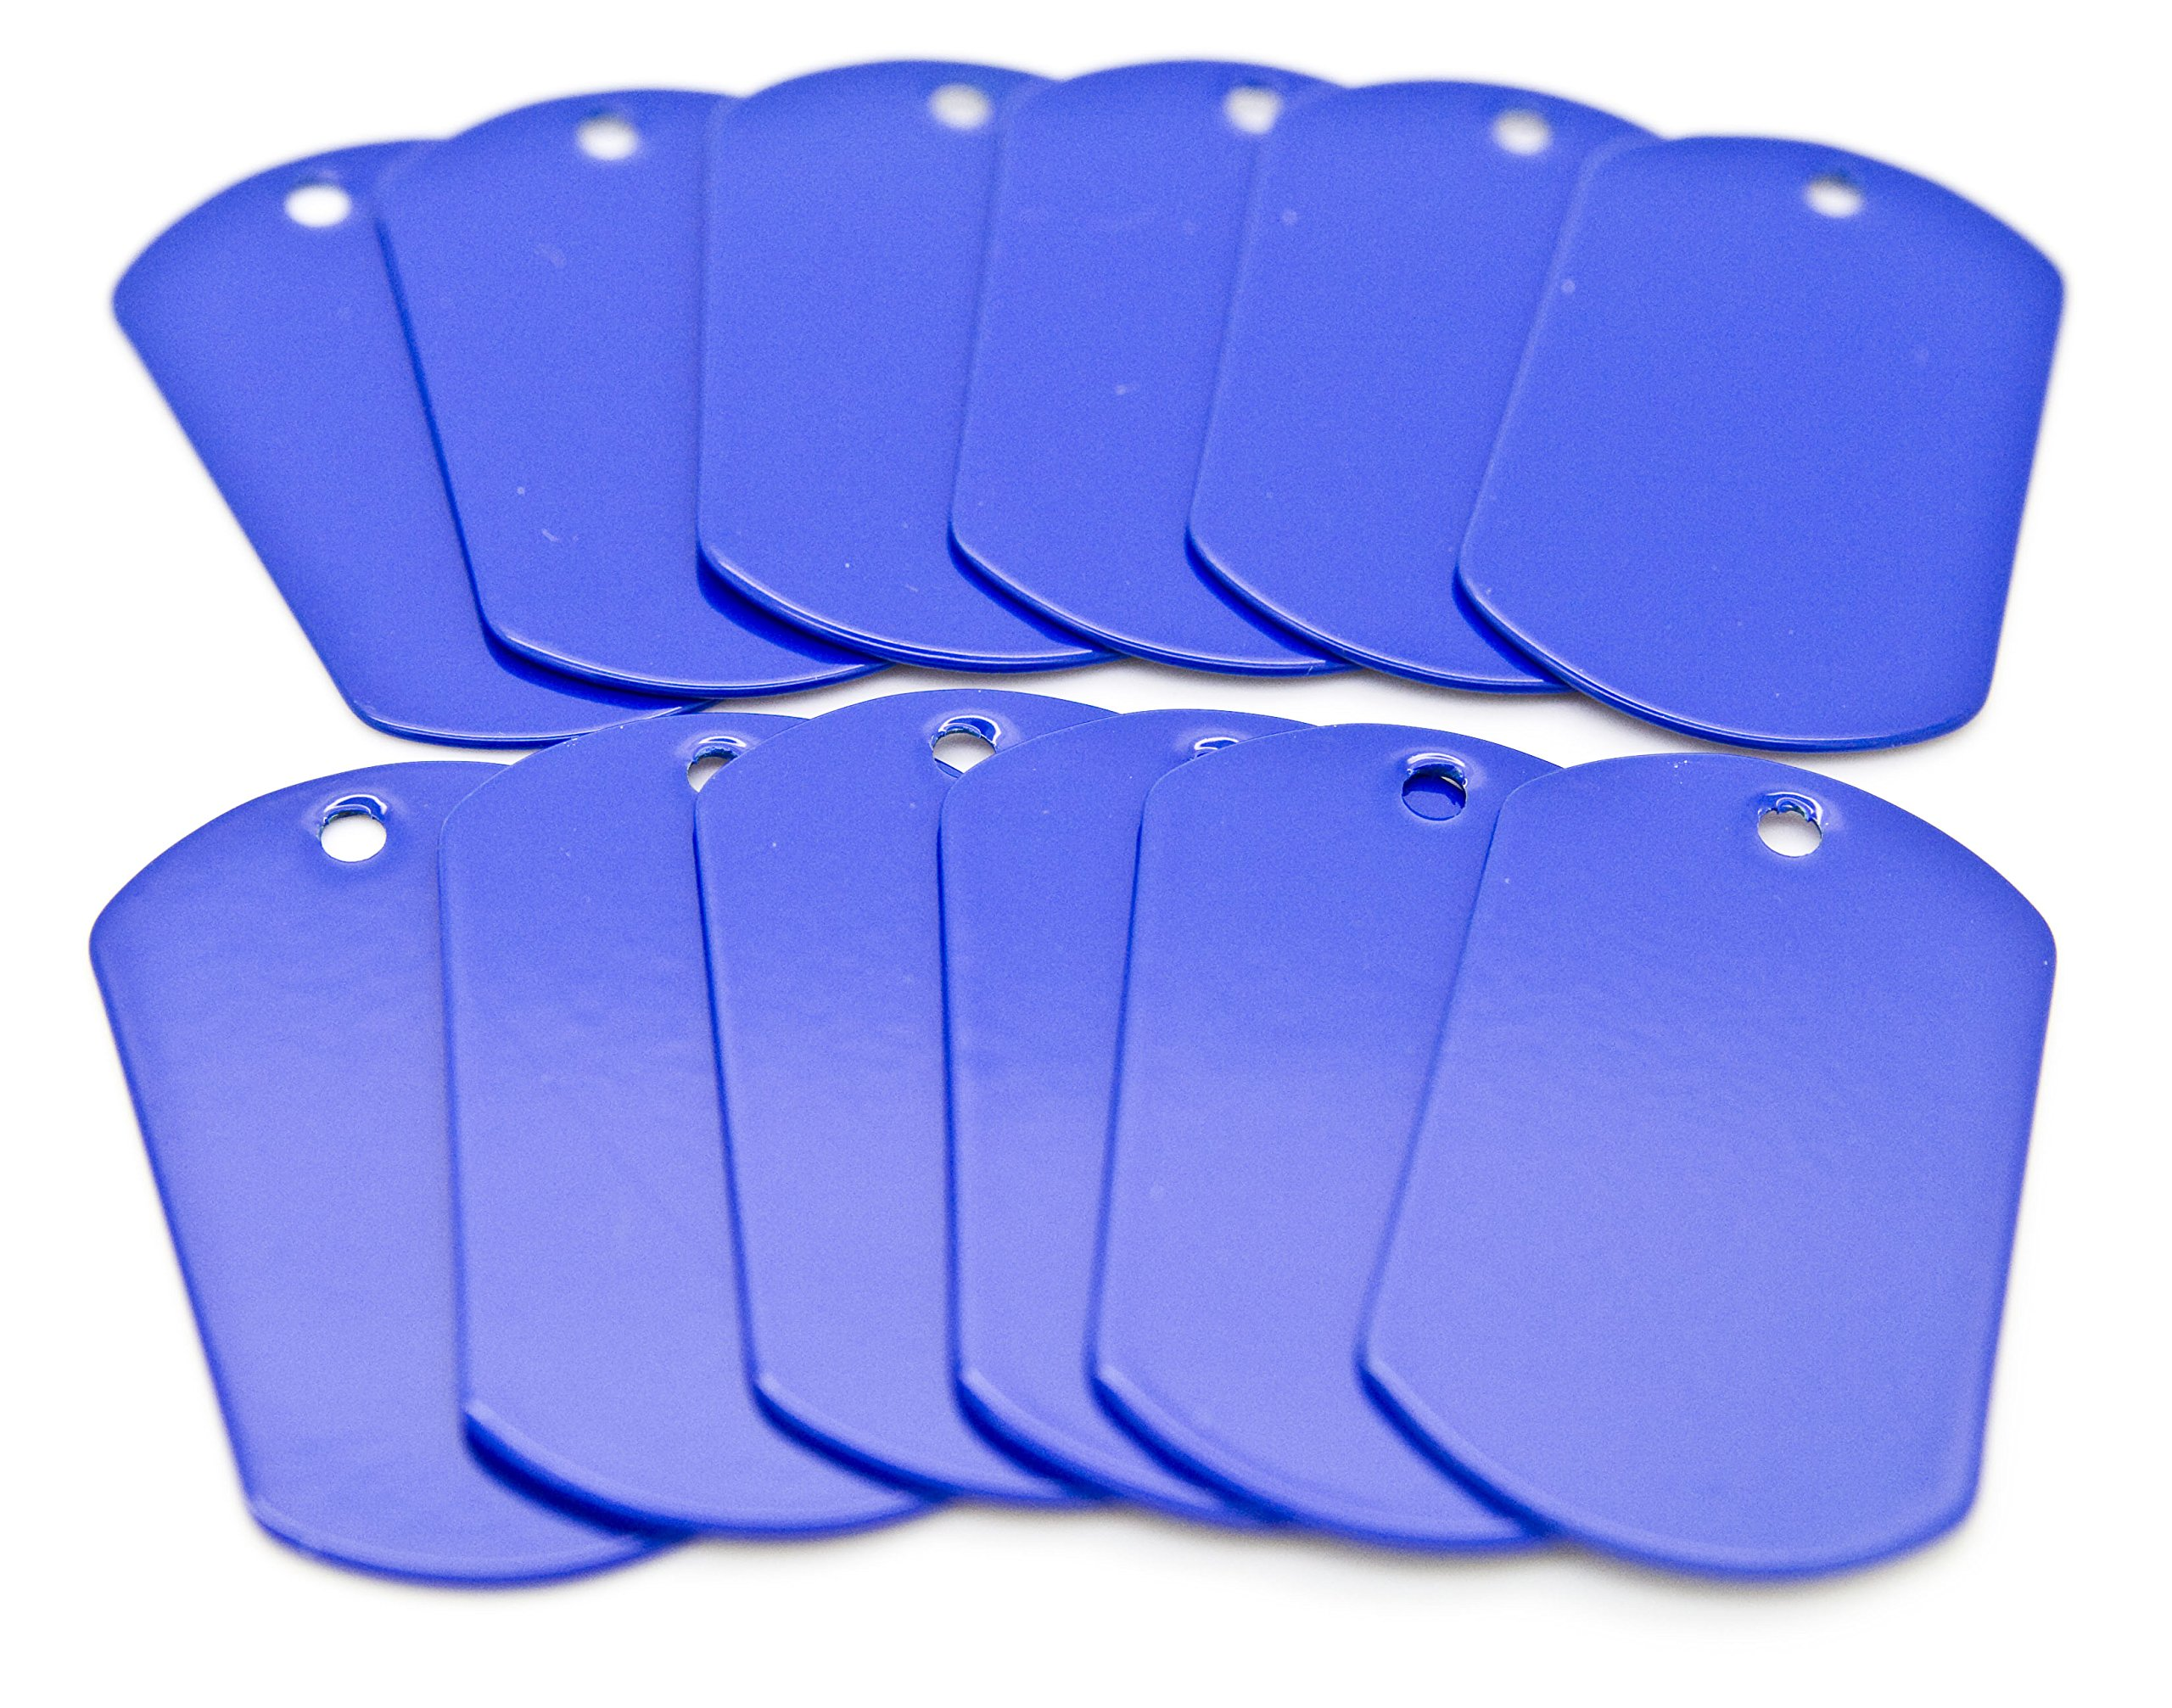 100 pcs Blue Color Stainless Steel Military Spec Dog Tags